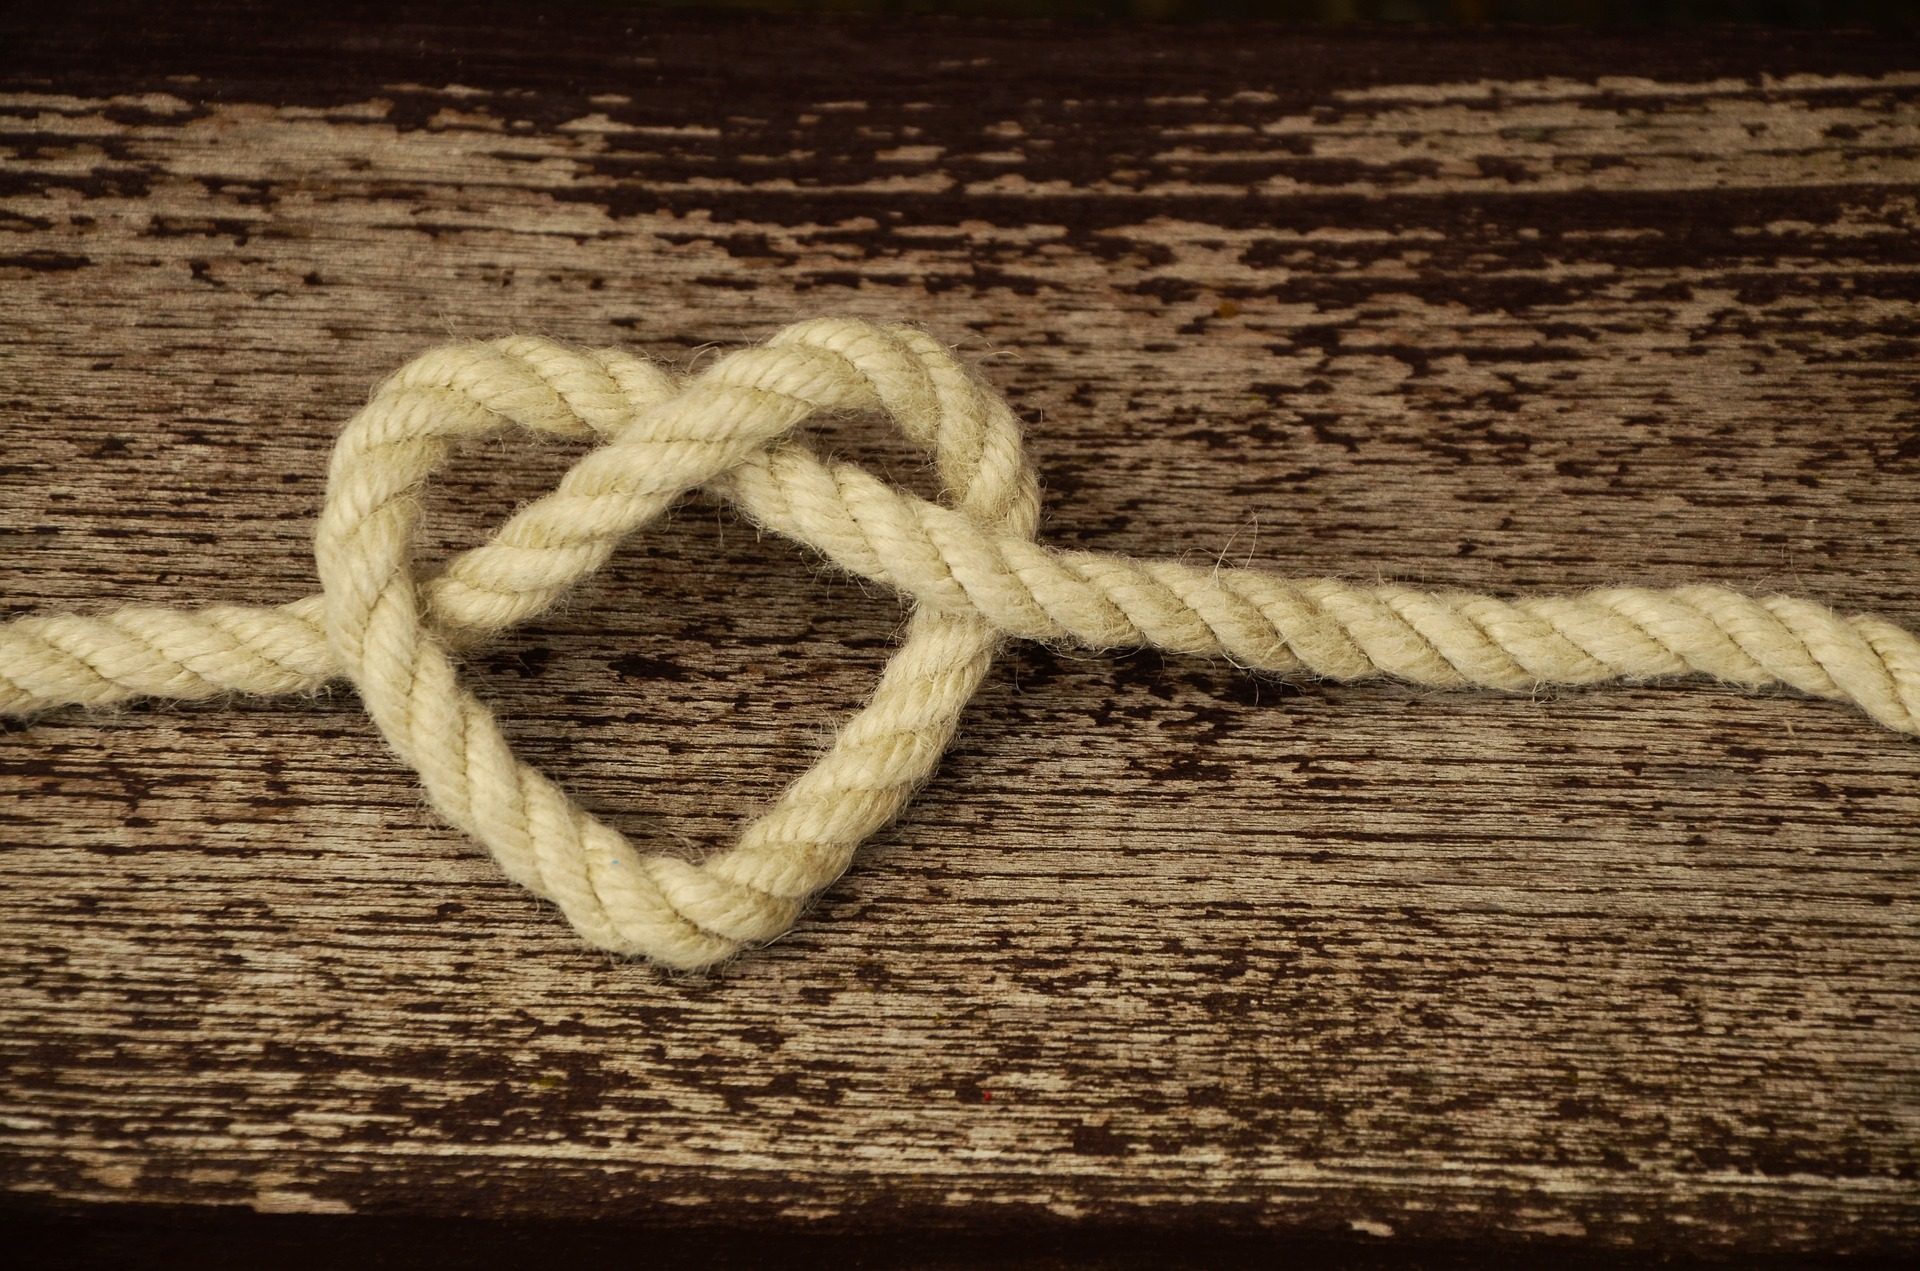 Heart made of Rope